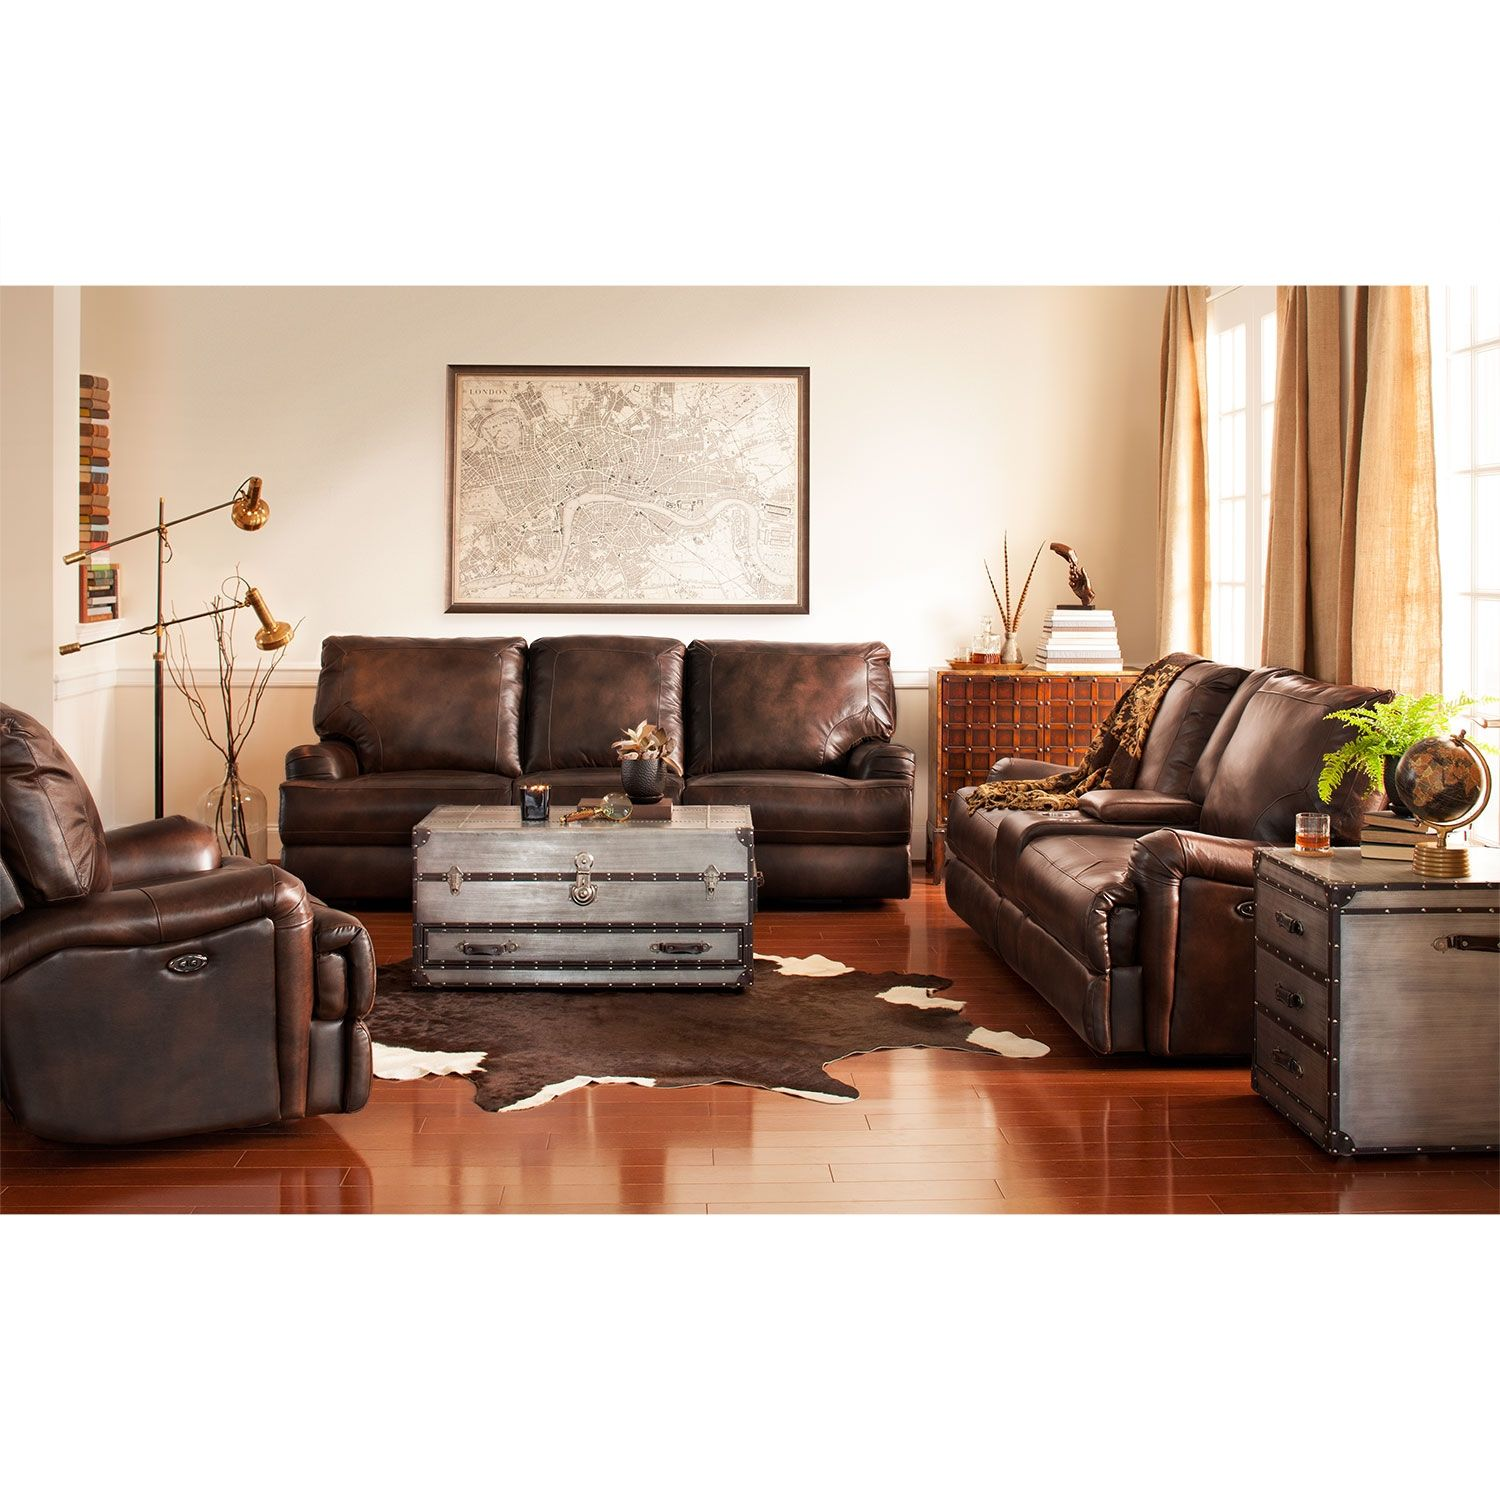 Hooker Furniture Seven Seas Stationary Leather Sofa In Malawi Tonga |  Tonga, Hooker Furniture And Decorating